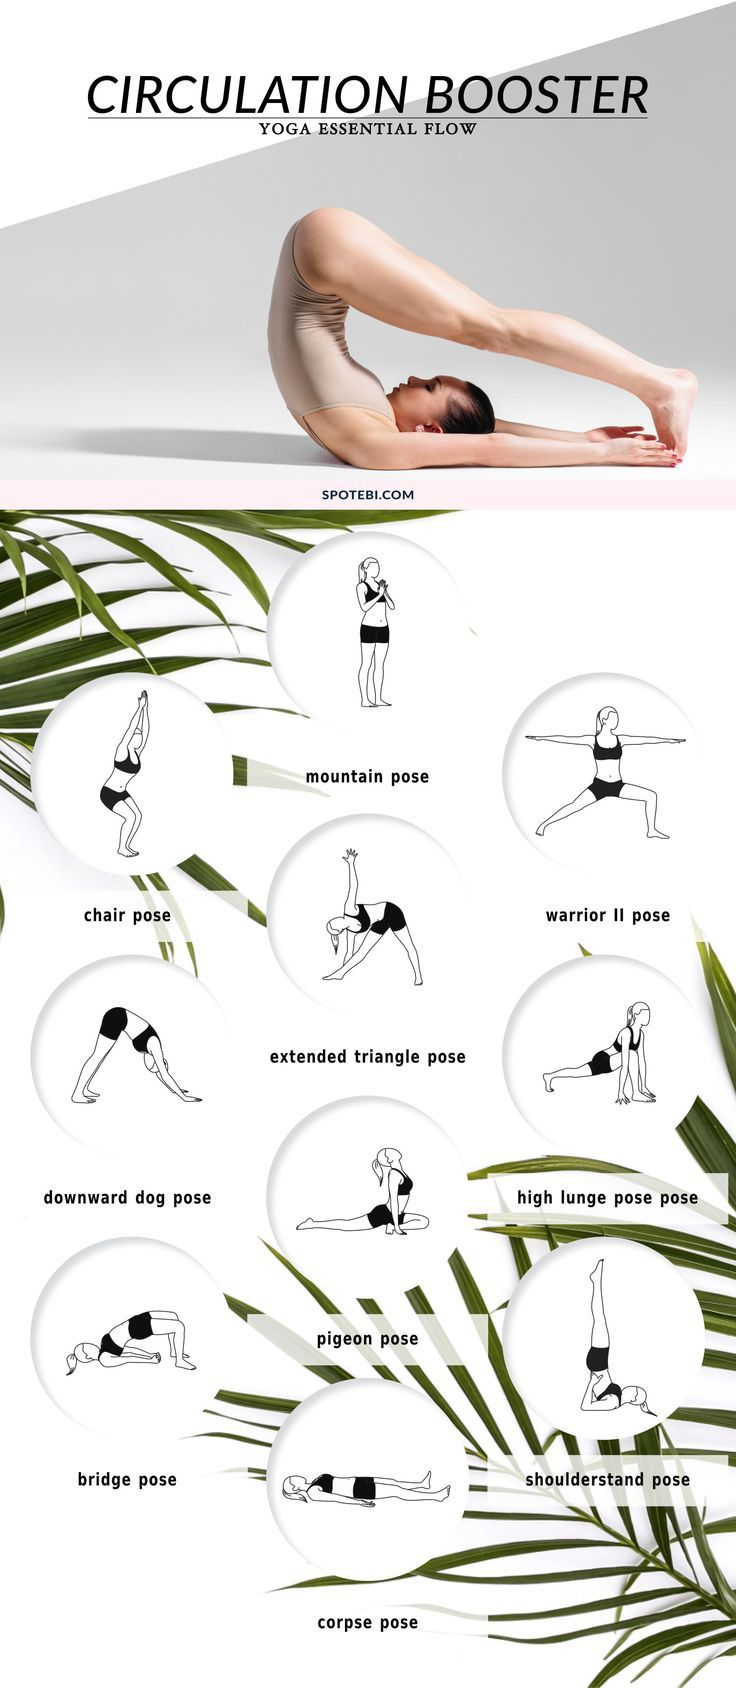 If you spend a lot of time sitting down and are worried about how that can affect your health, just squeeze in our Circulation Booster Sequence in one of your sitting breaks, and allow your body to heal and repair. This 12 minute yoga essential flow is de http://amzn.to/2ssKnYB